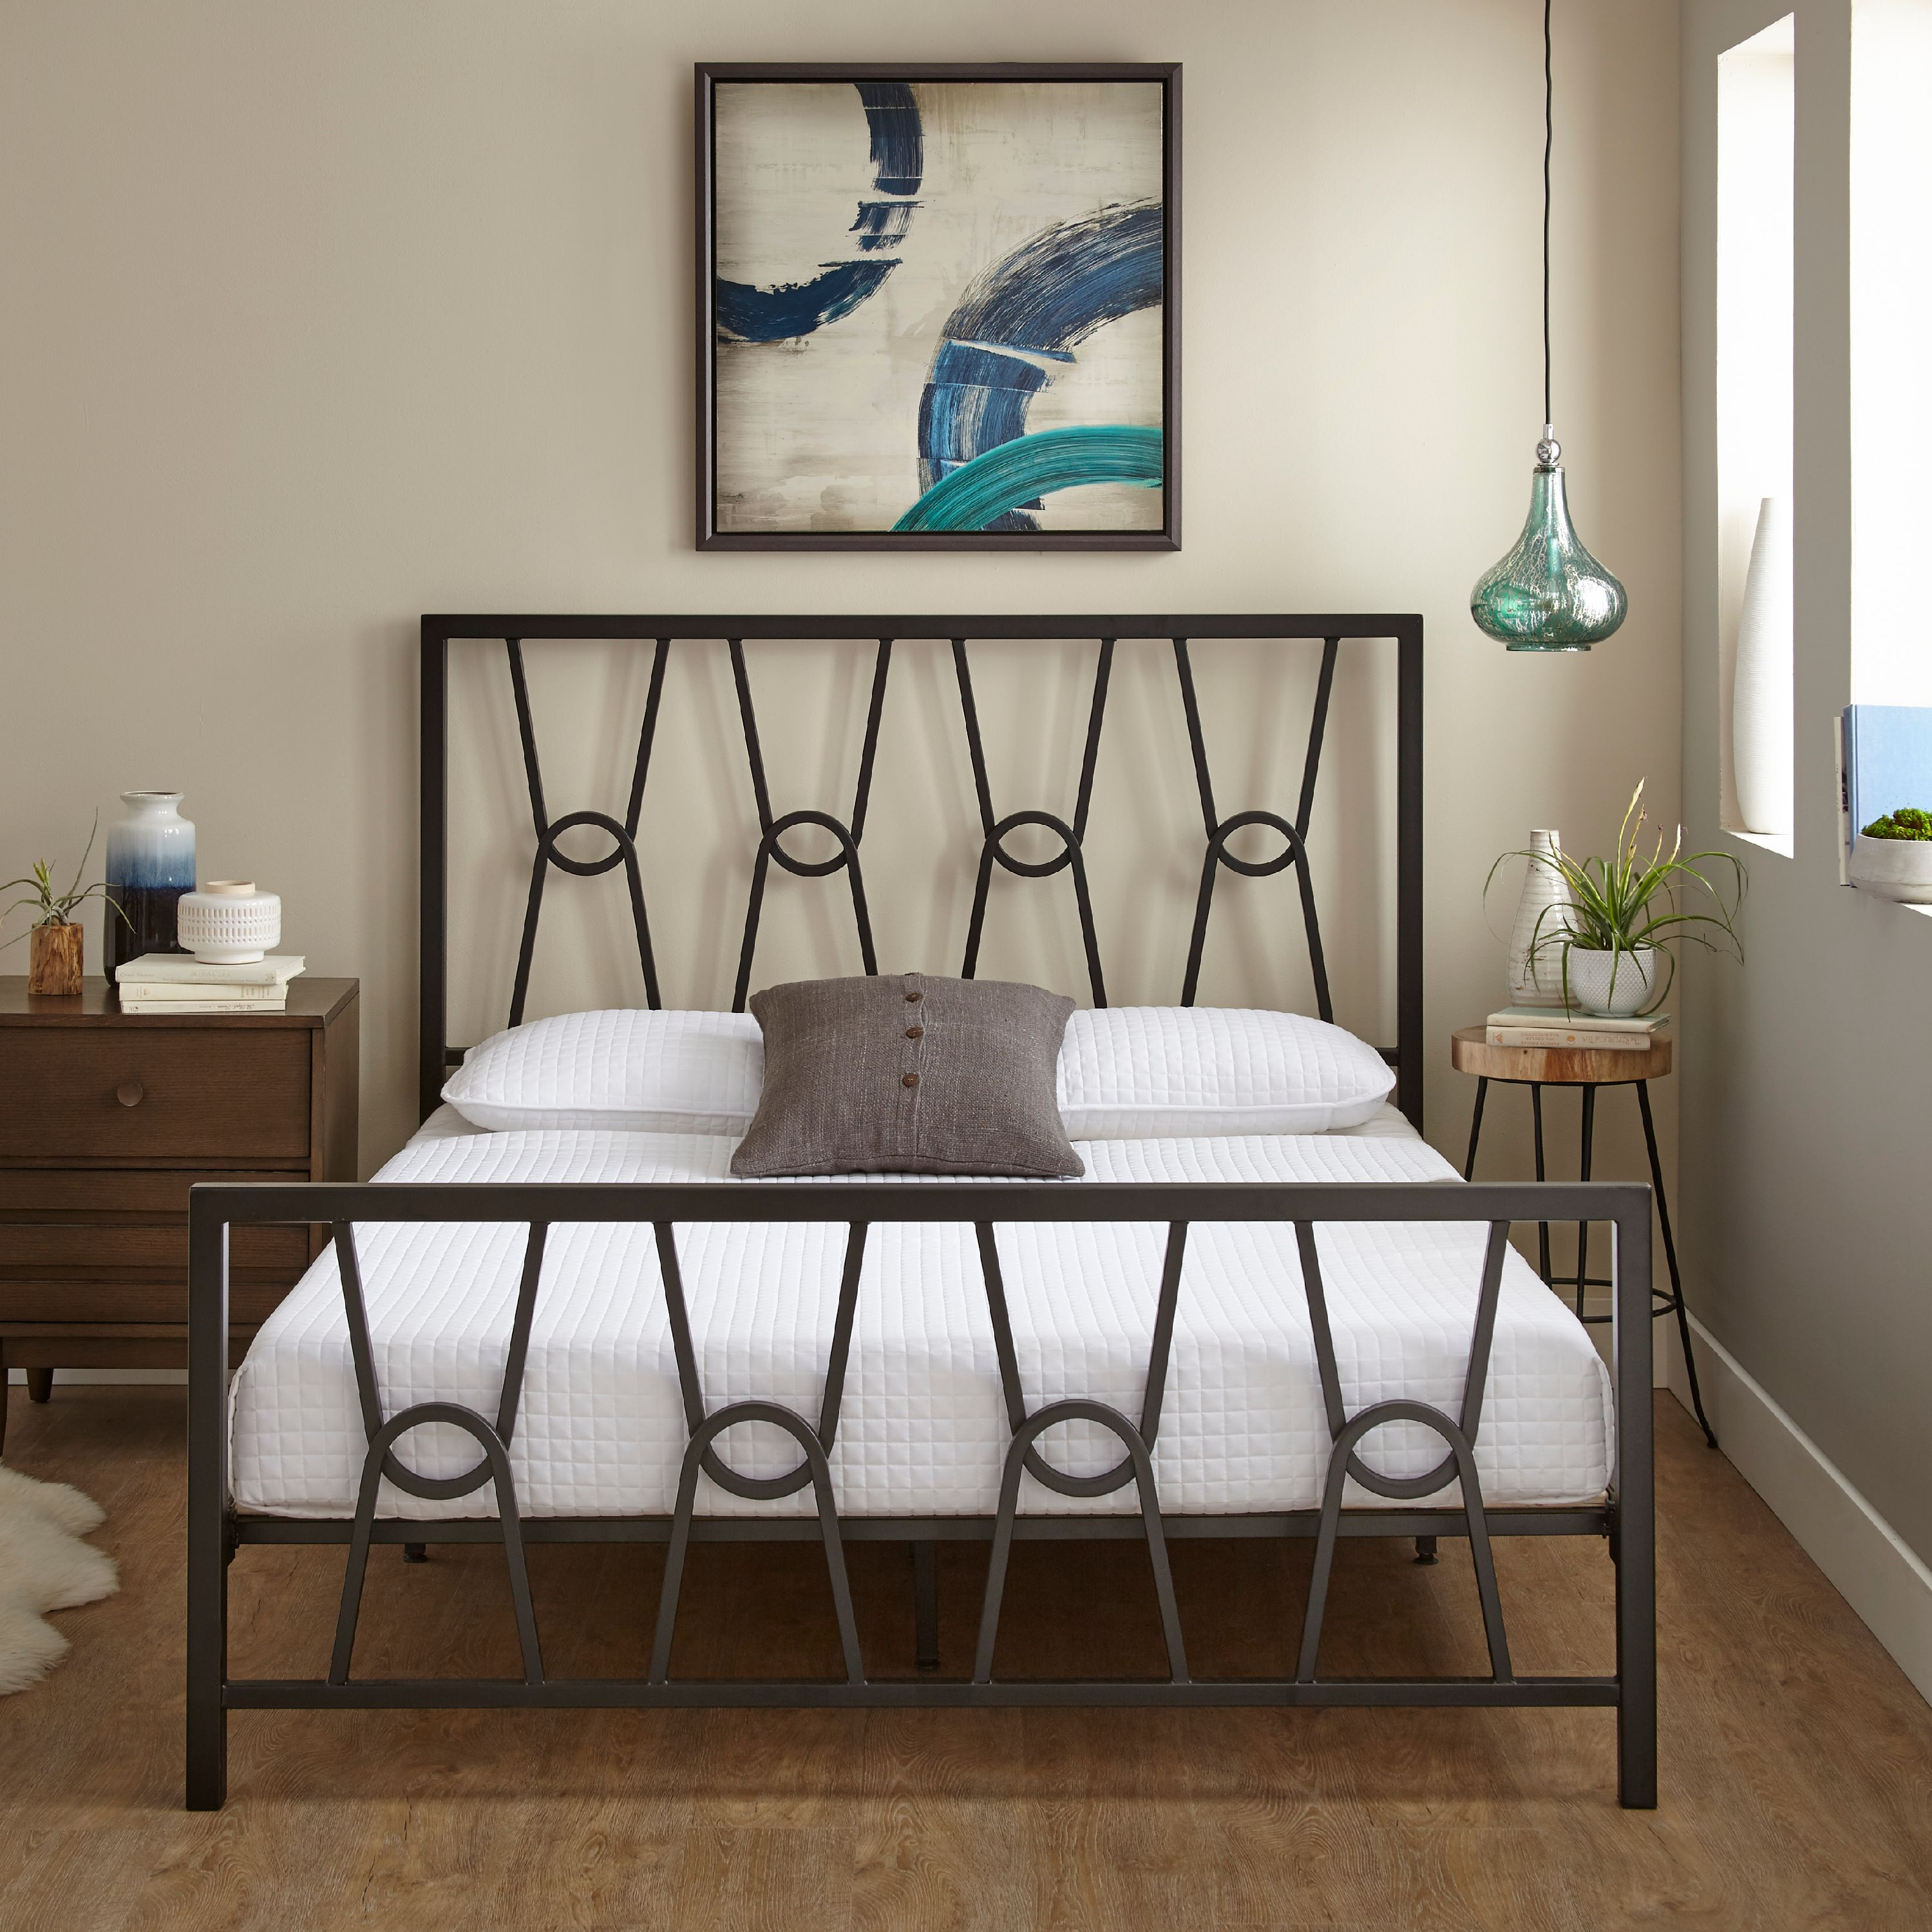 Premier Mathis Platform Metal Bed Frame with Bonus Base Wooden Slat System, Multiple Sizes